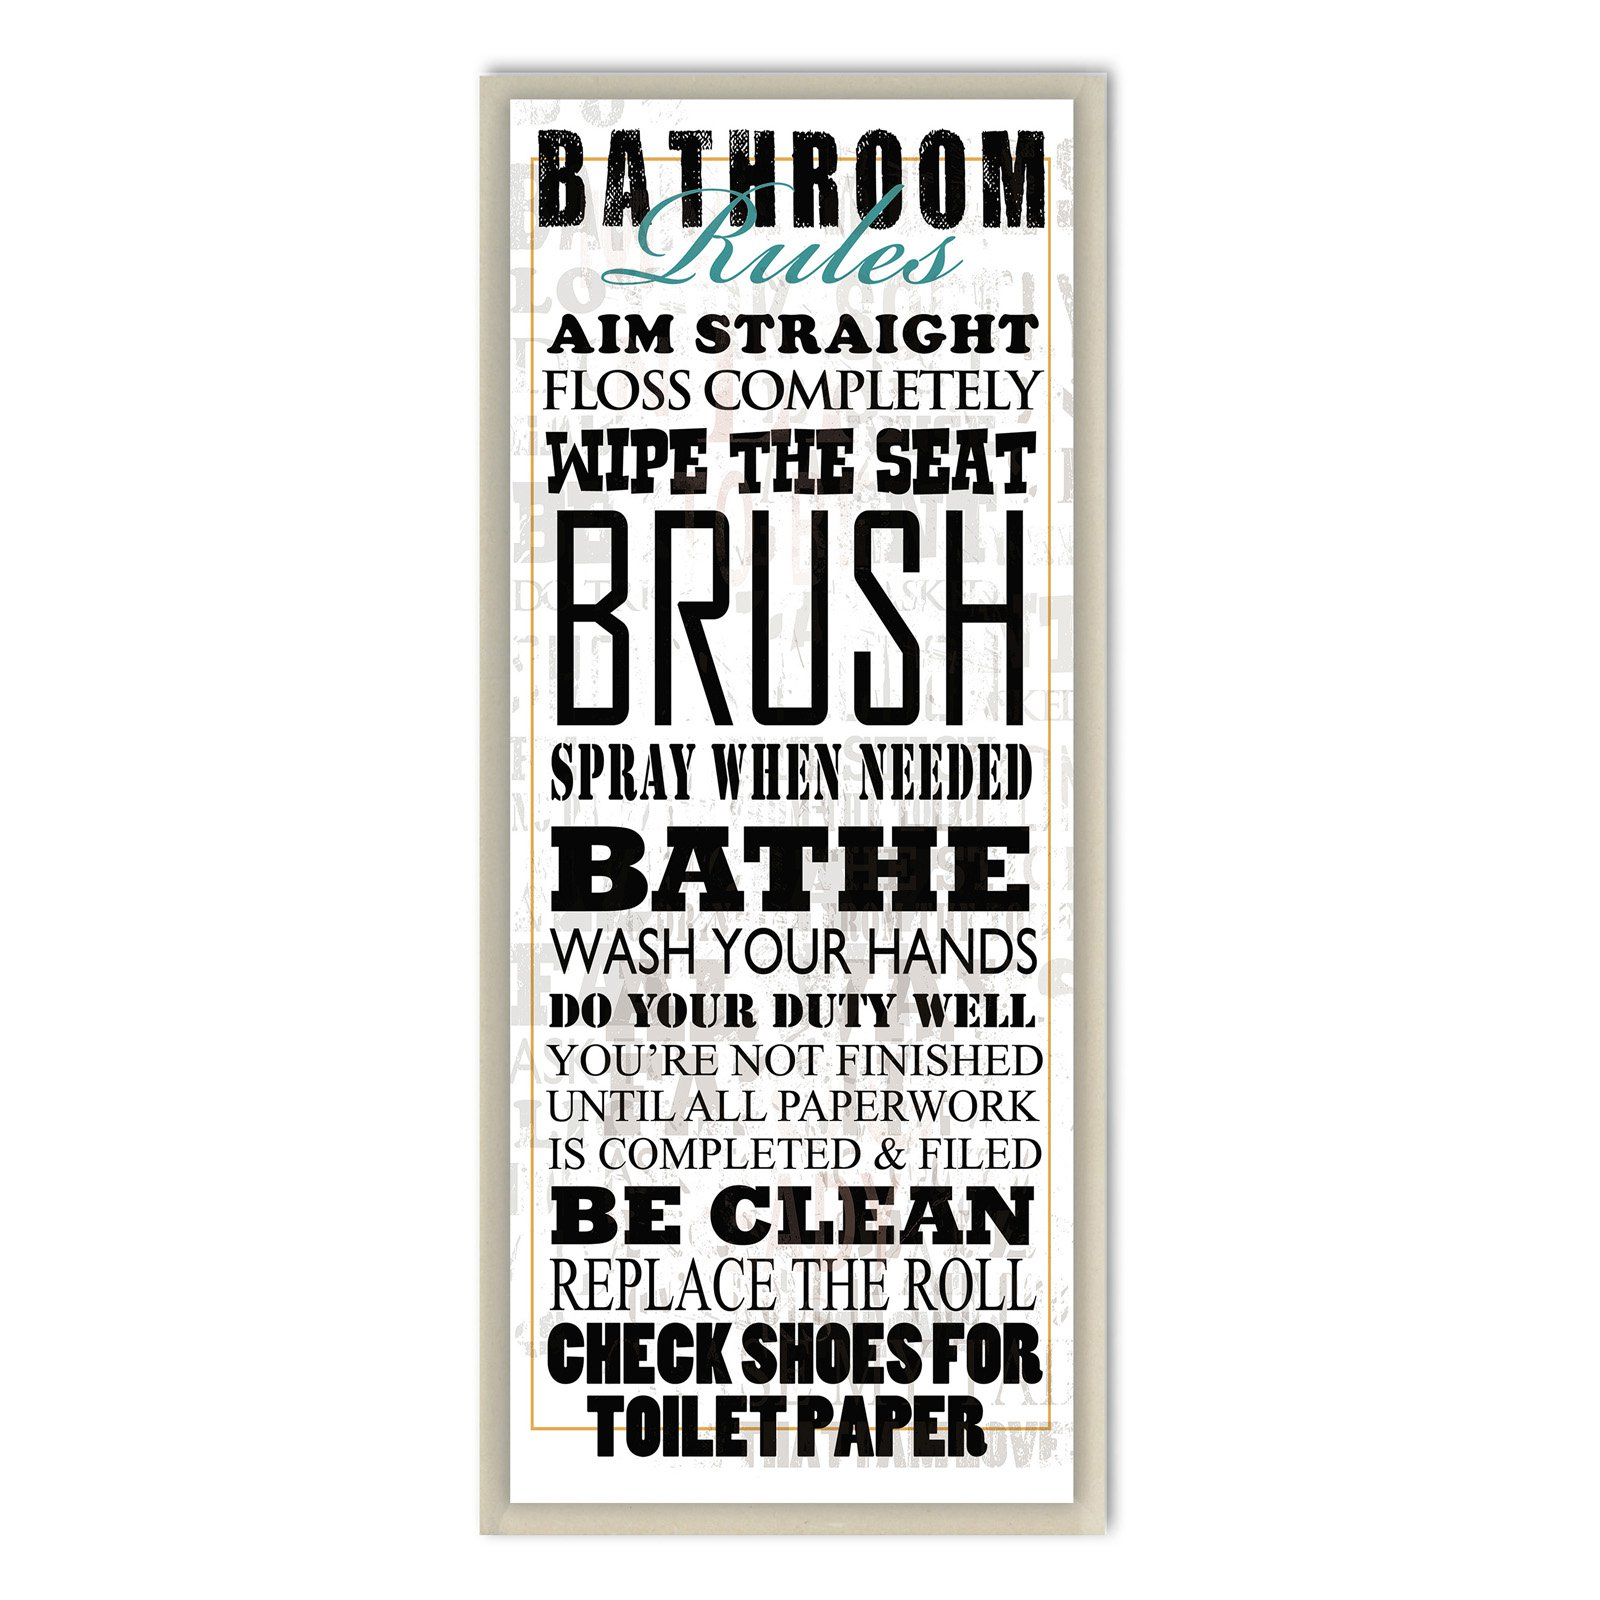 Bathroom Rules Typography Tall White Bathroom Wall Plaque by Stupell Industries